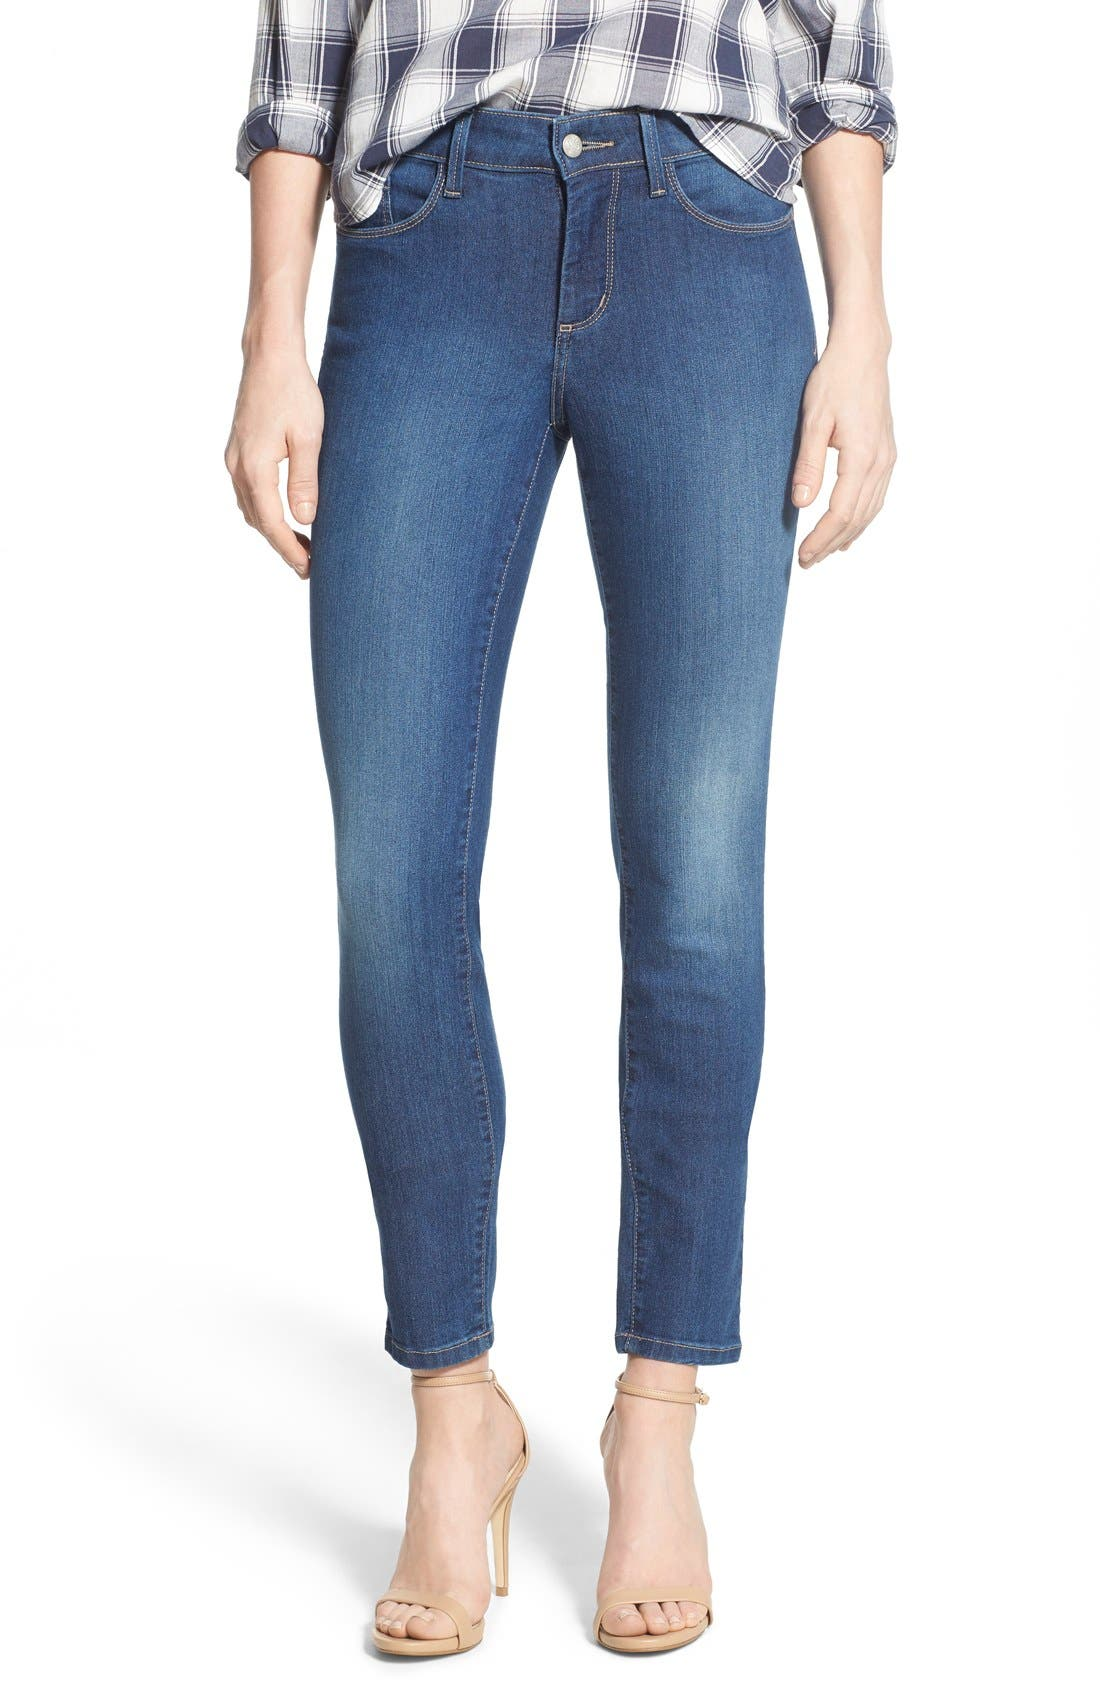 Alternate Image 1 Selected - NYDJ Ami Stretch Skinny Jeans (Cleveland) (Regular & Petite)